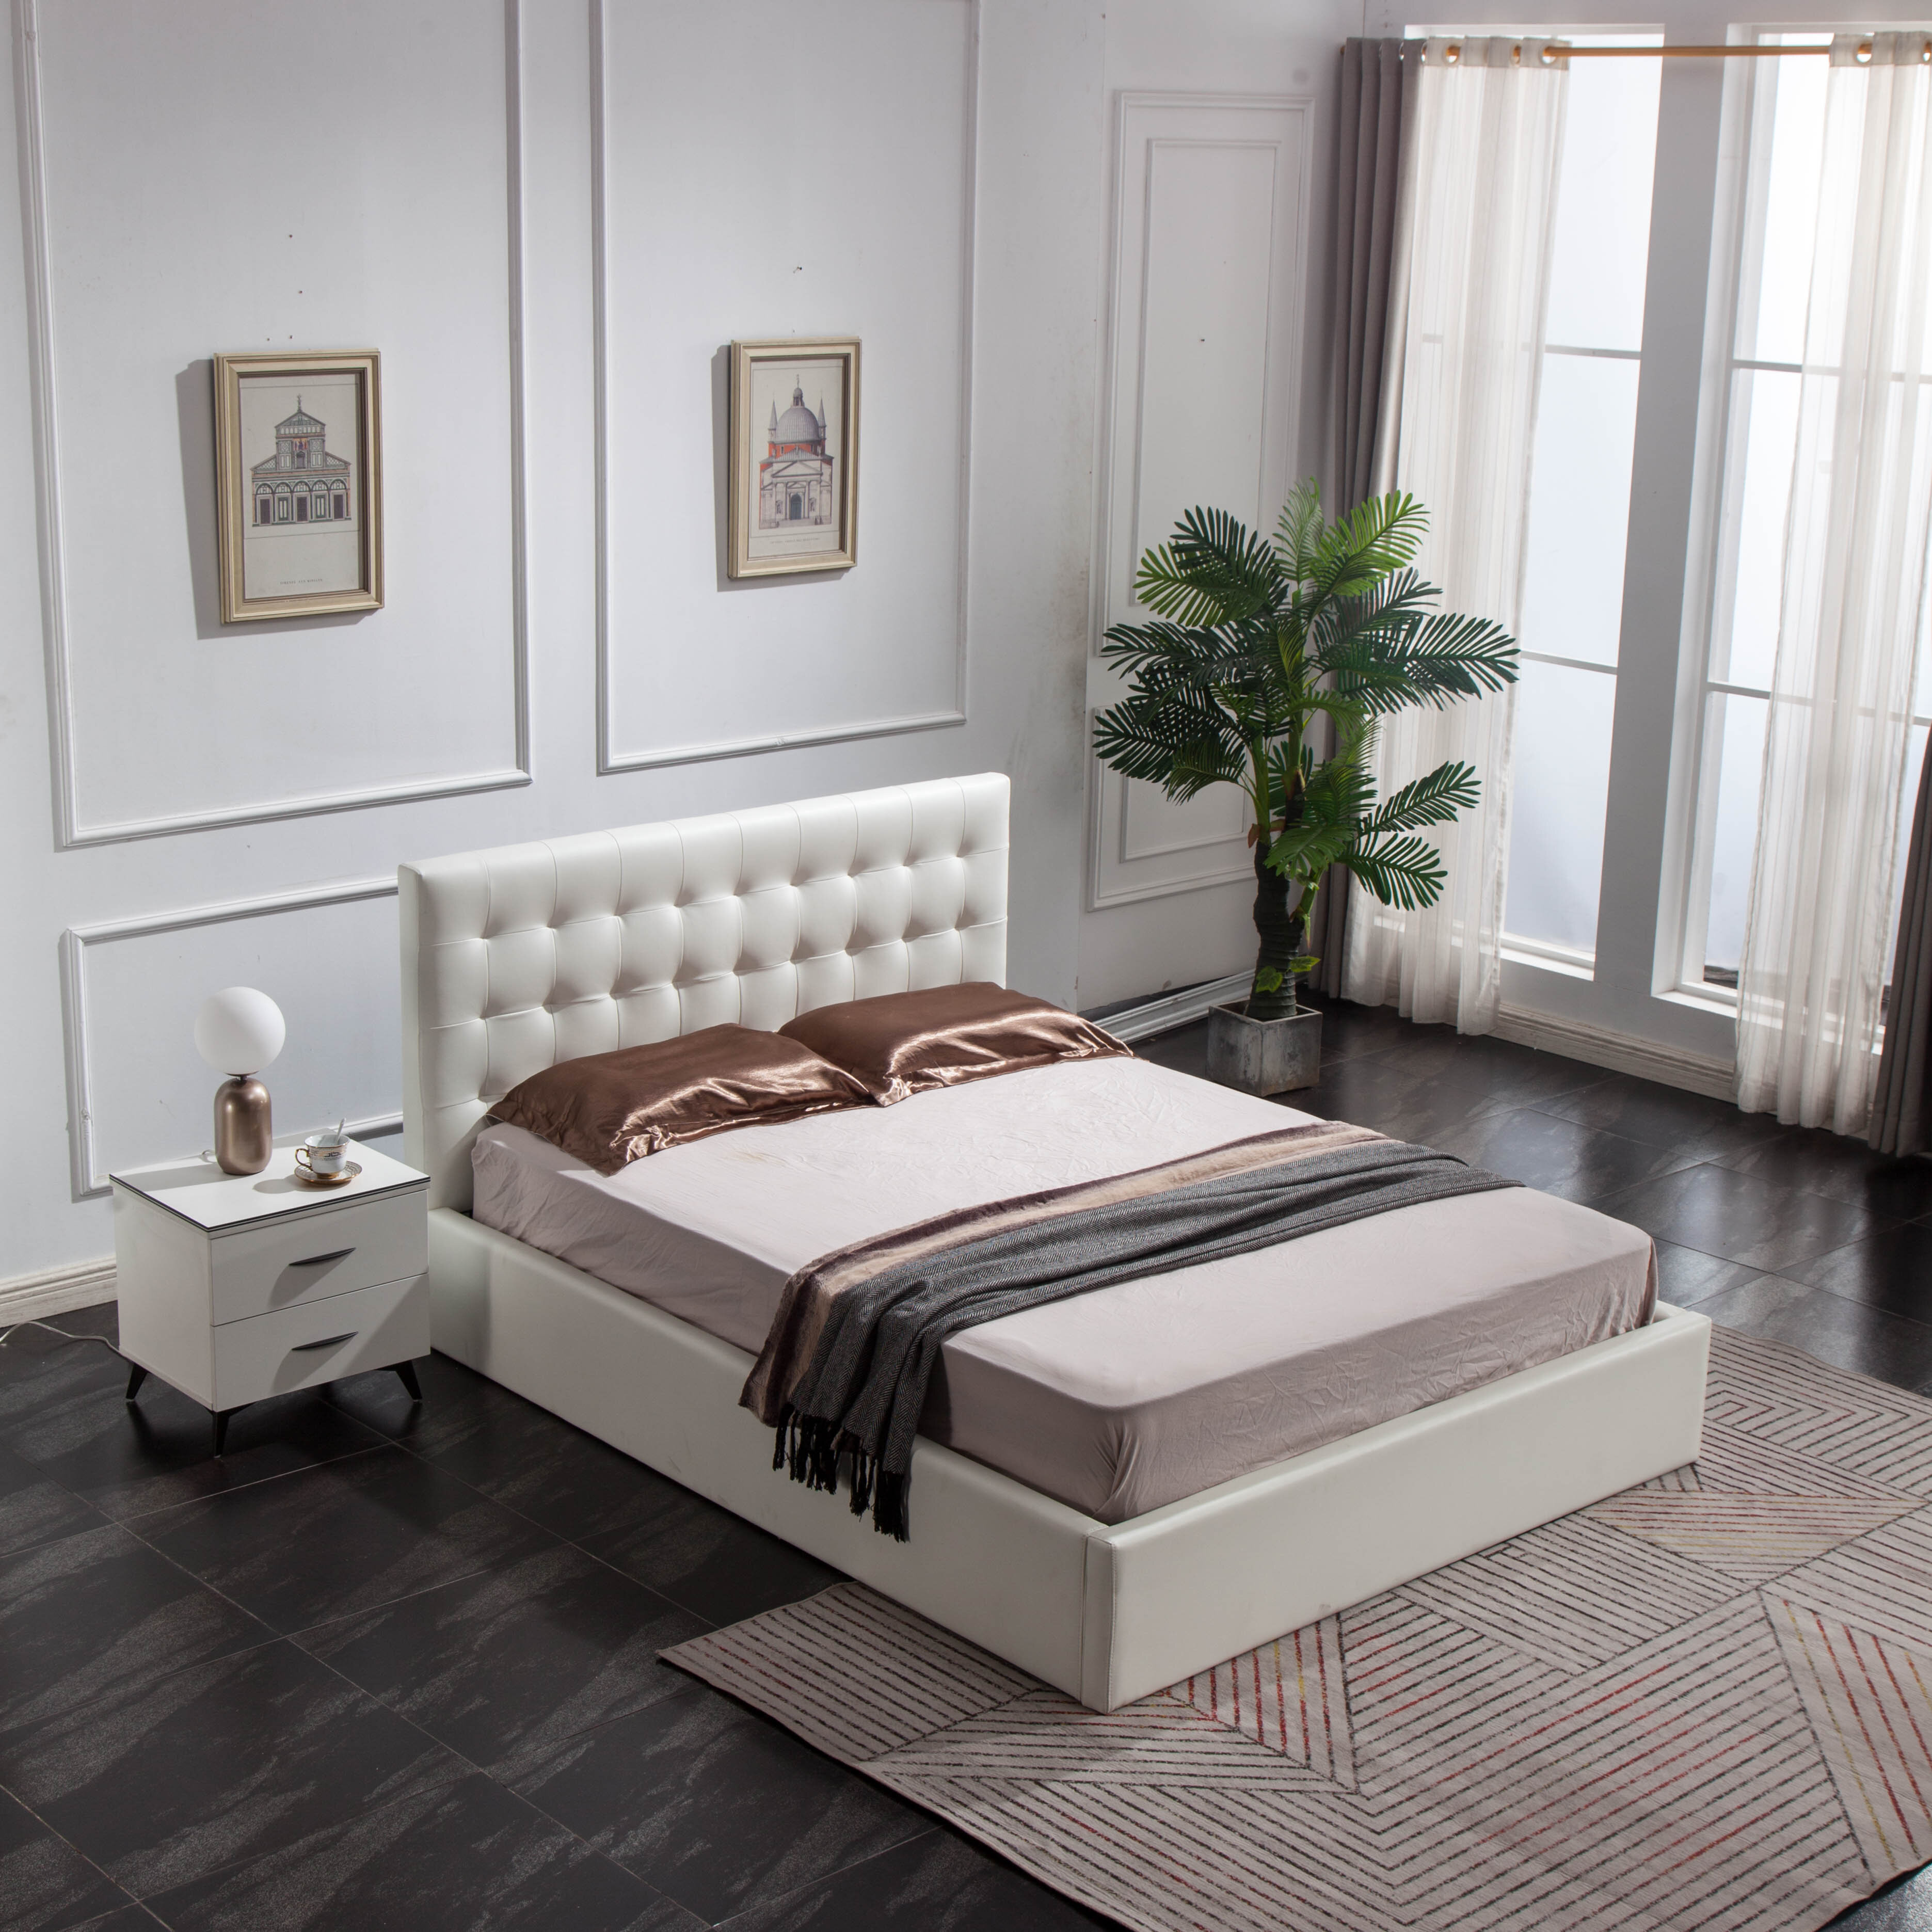 Picture of: Full Double White Storage Beds You Ll Love In 2020 Wayfair